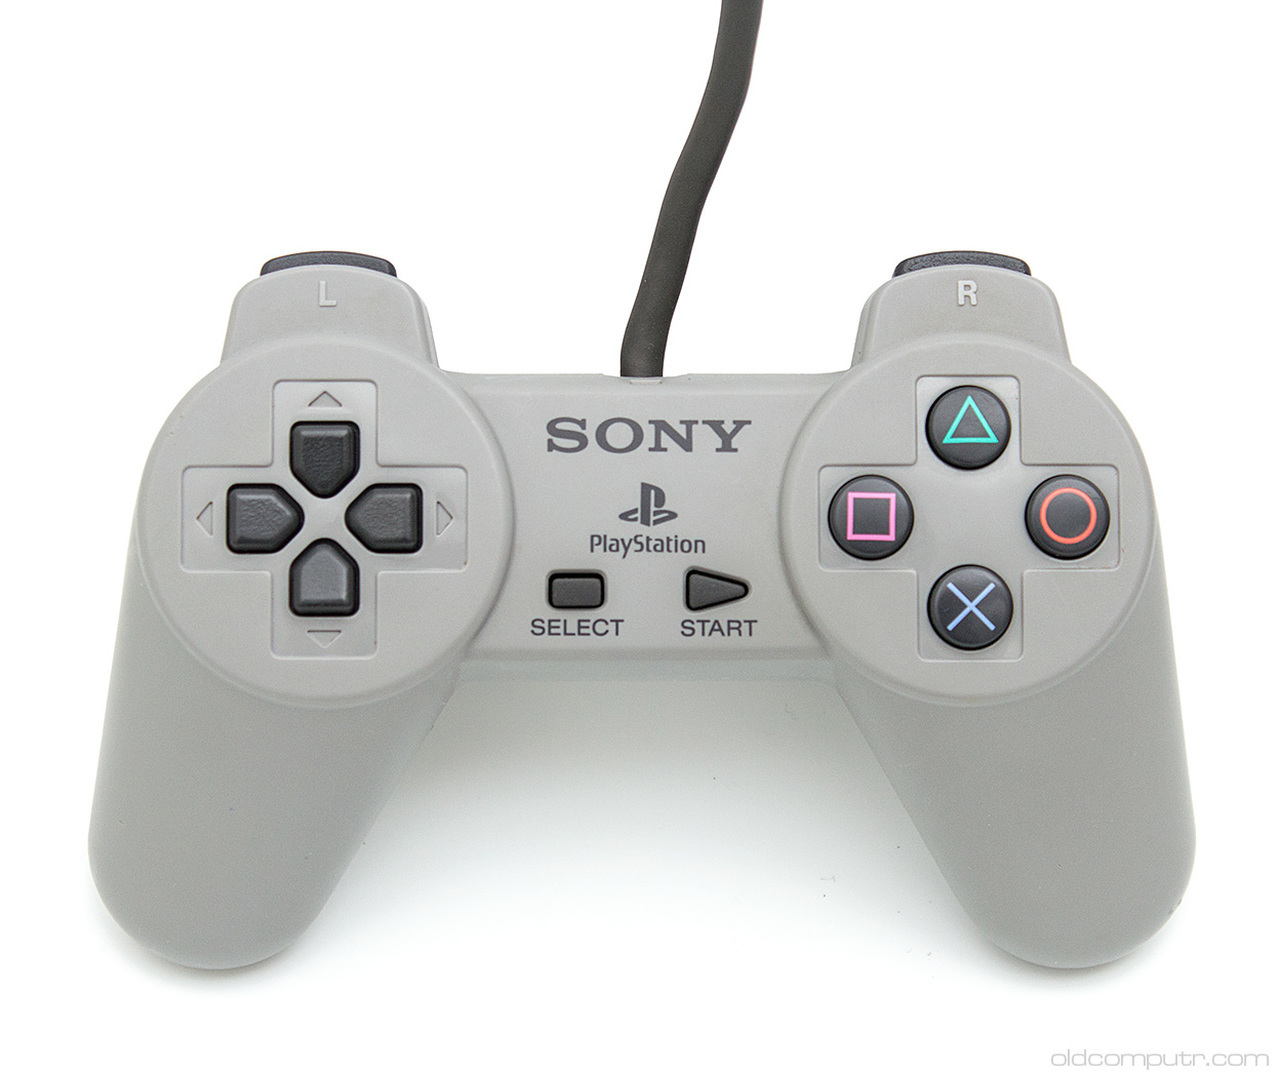 sony_ps1_original_controller-8675__14312.1536270960.jpg